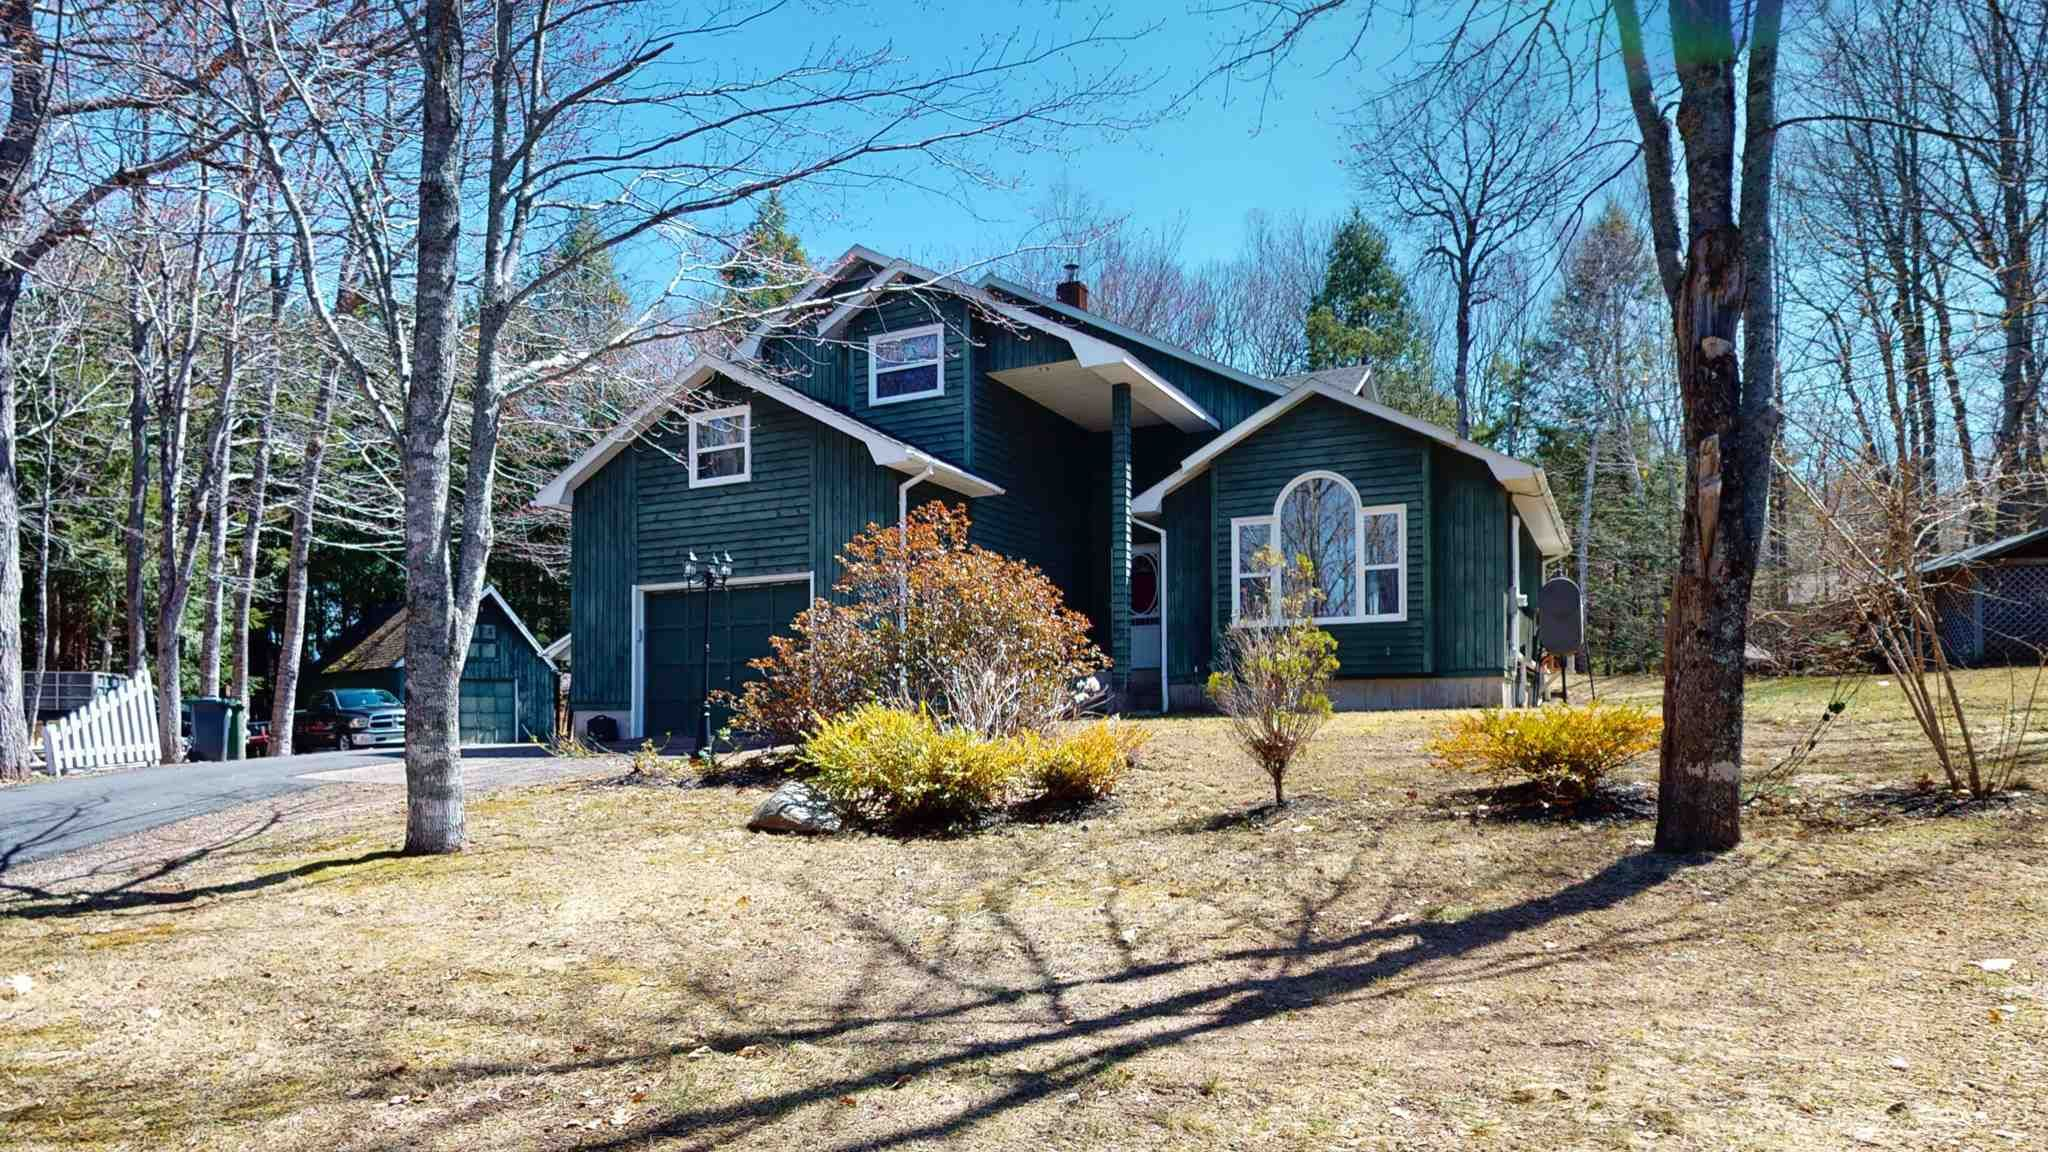 Main Photo: 50 Harry Drive in Highbury: 404-Kings County Residential for sale (Annapolis Valley)  : MLS®# 202109169